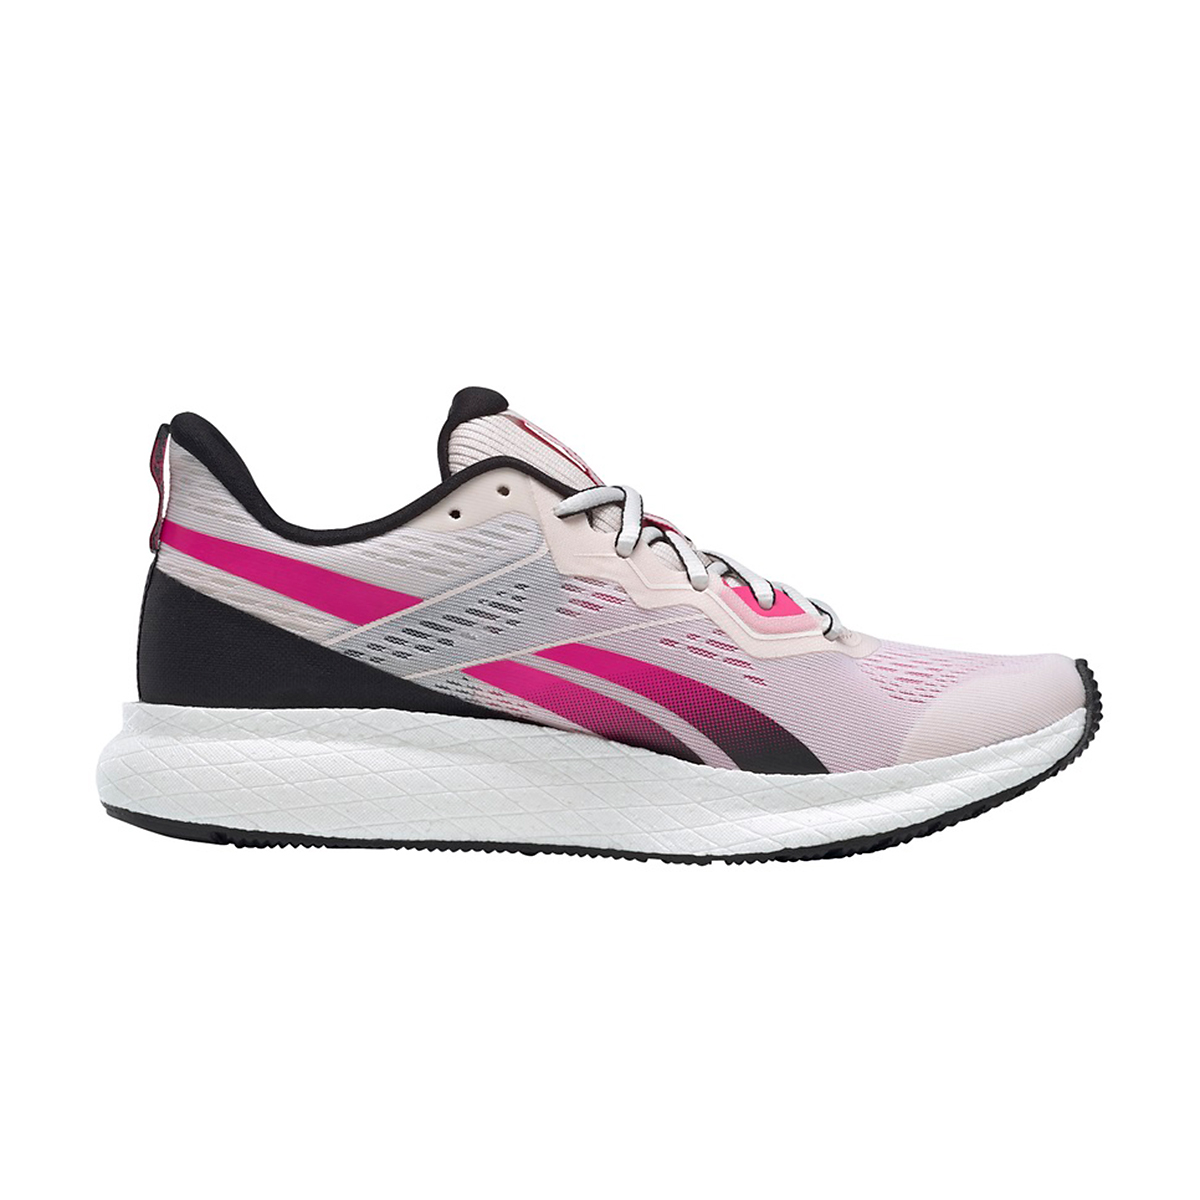 Women's Reebok Forever Floatride Energy 2.0 Running Shoe - Color: Glass Pink/Black/Proud Pink - Size: 5 - Width: Regular, Glass Pink/Black/Proud Pink, large, image 1